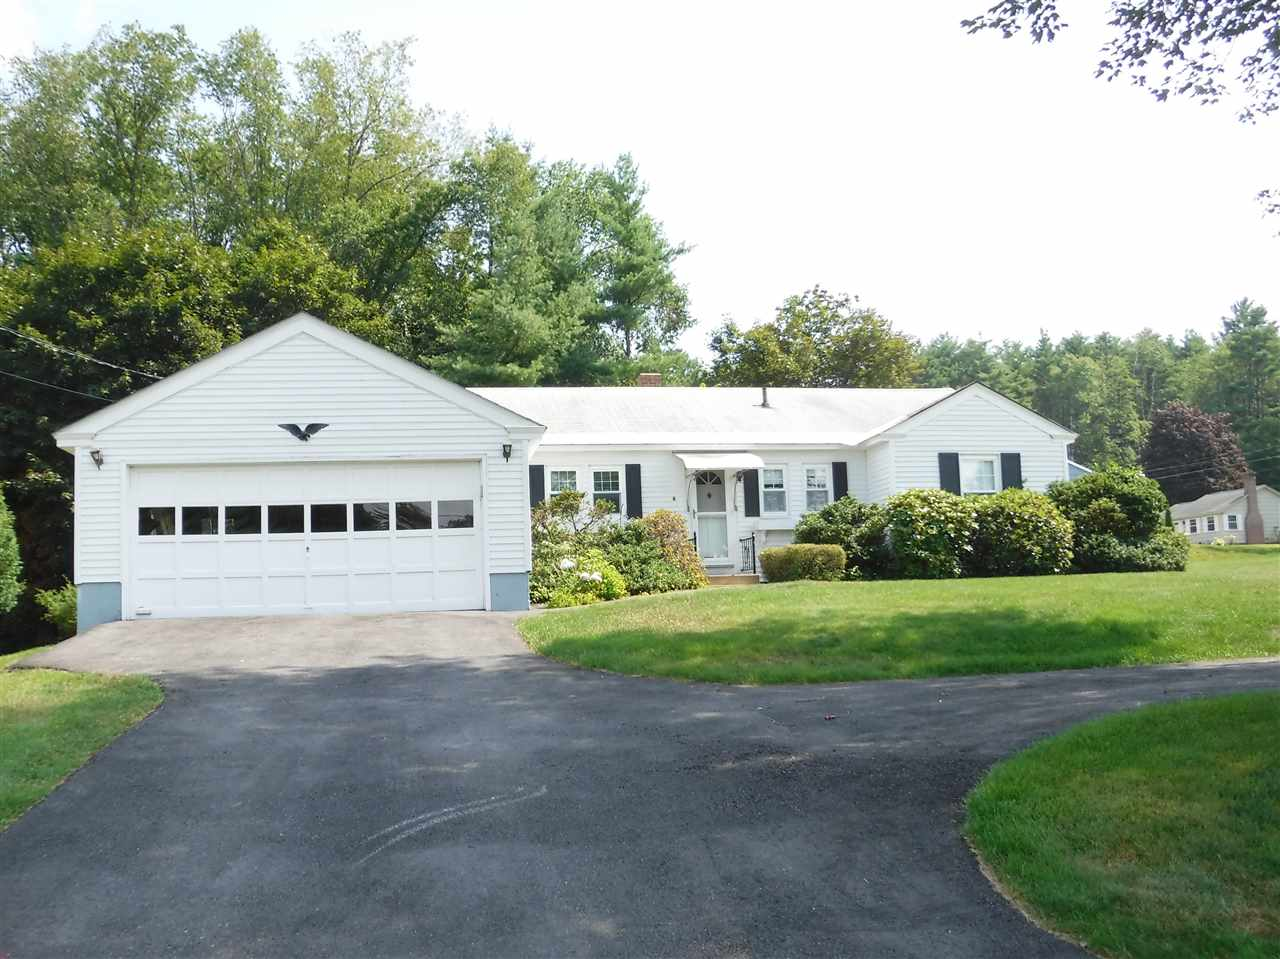 image of Claremont NH Home | sq.ft. 2448